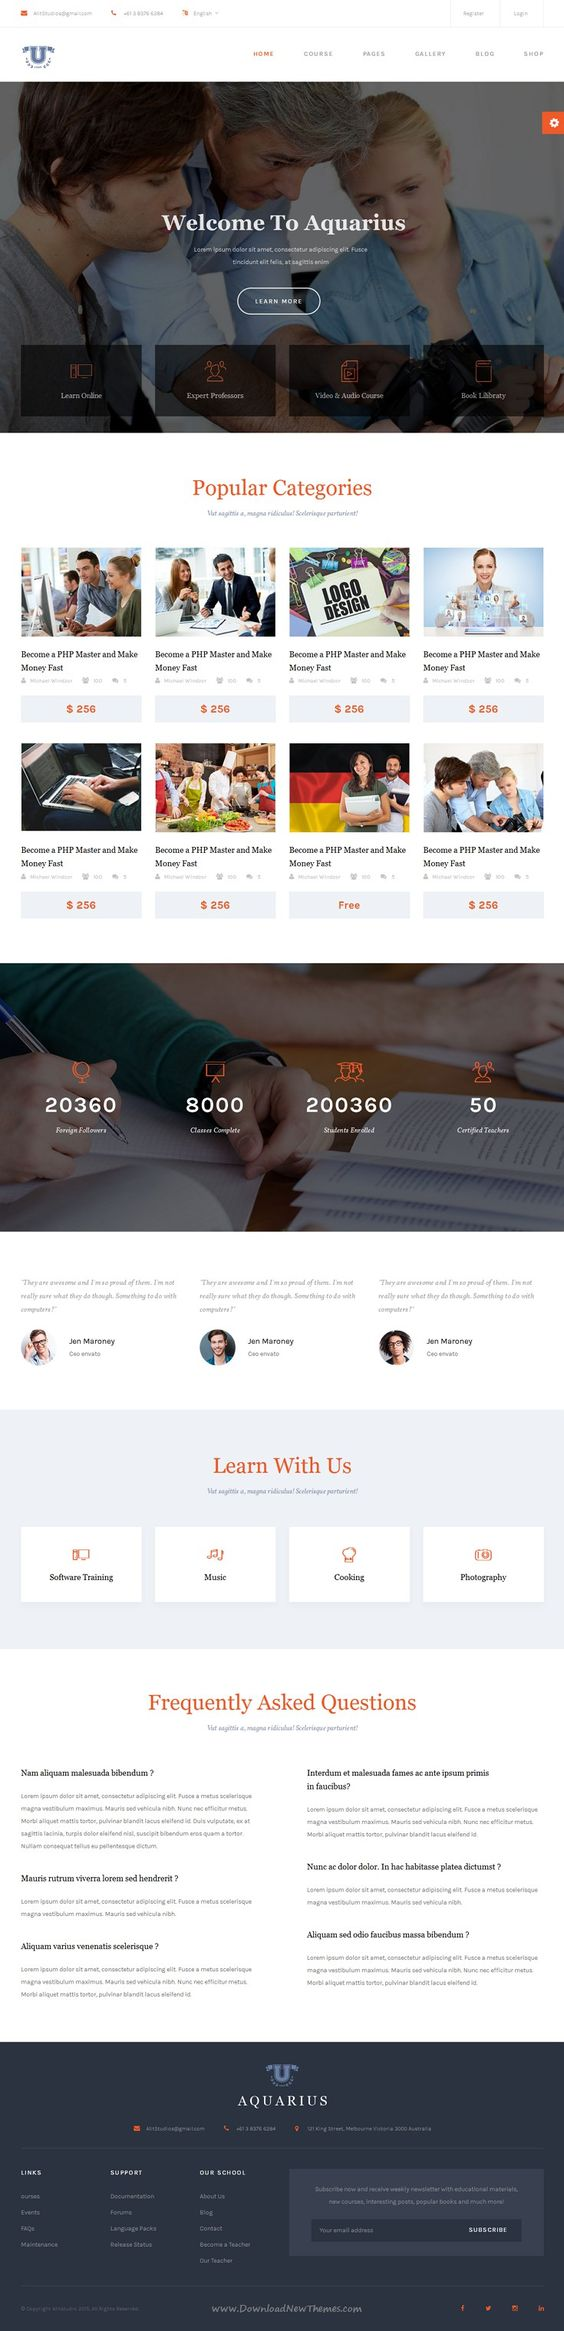 modern colleges and templates aquarius is a modern creative responsive bootstrap template for educational institutions like universities